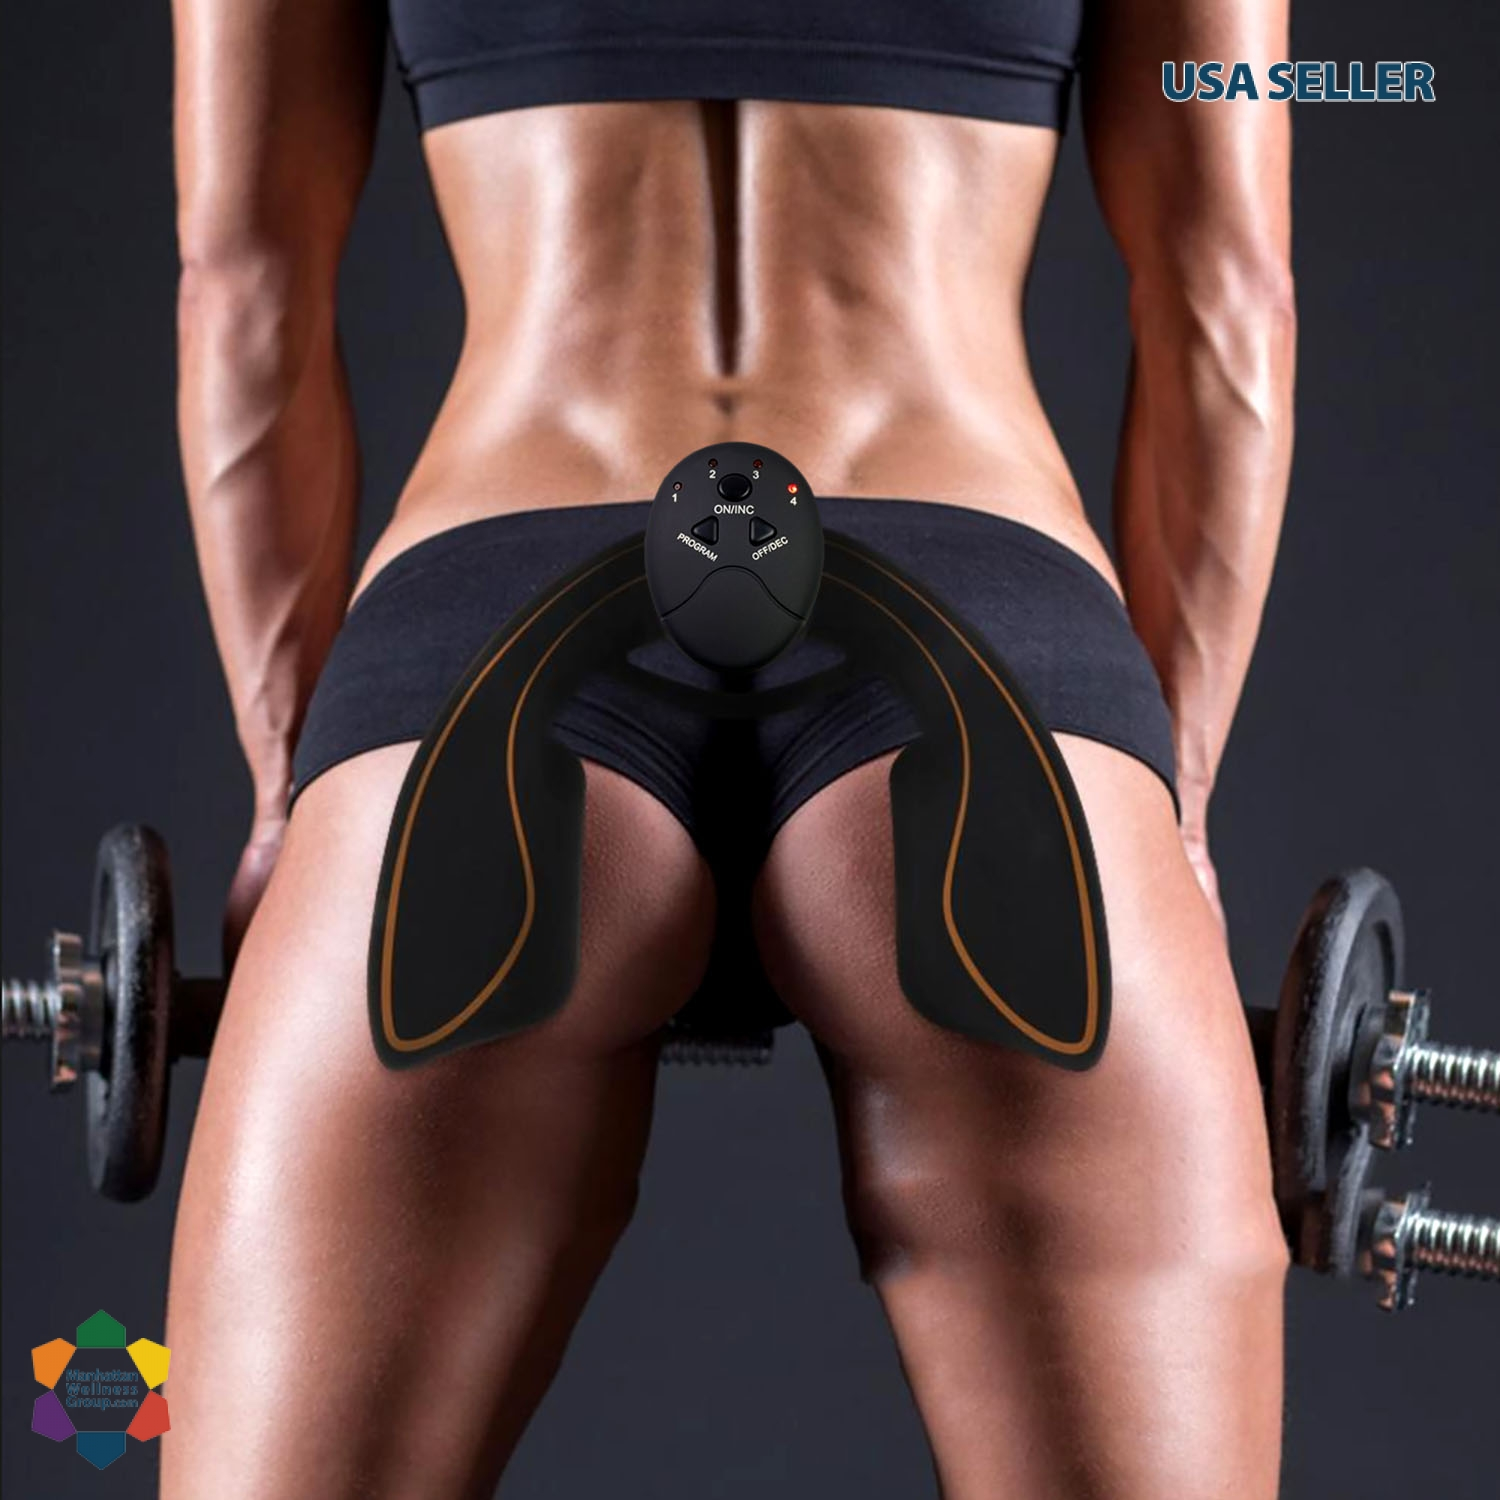 Hips-Muscle-Stimulator-Wireless-Smart-Fitness-manhattan-wellness-group-06